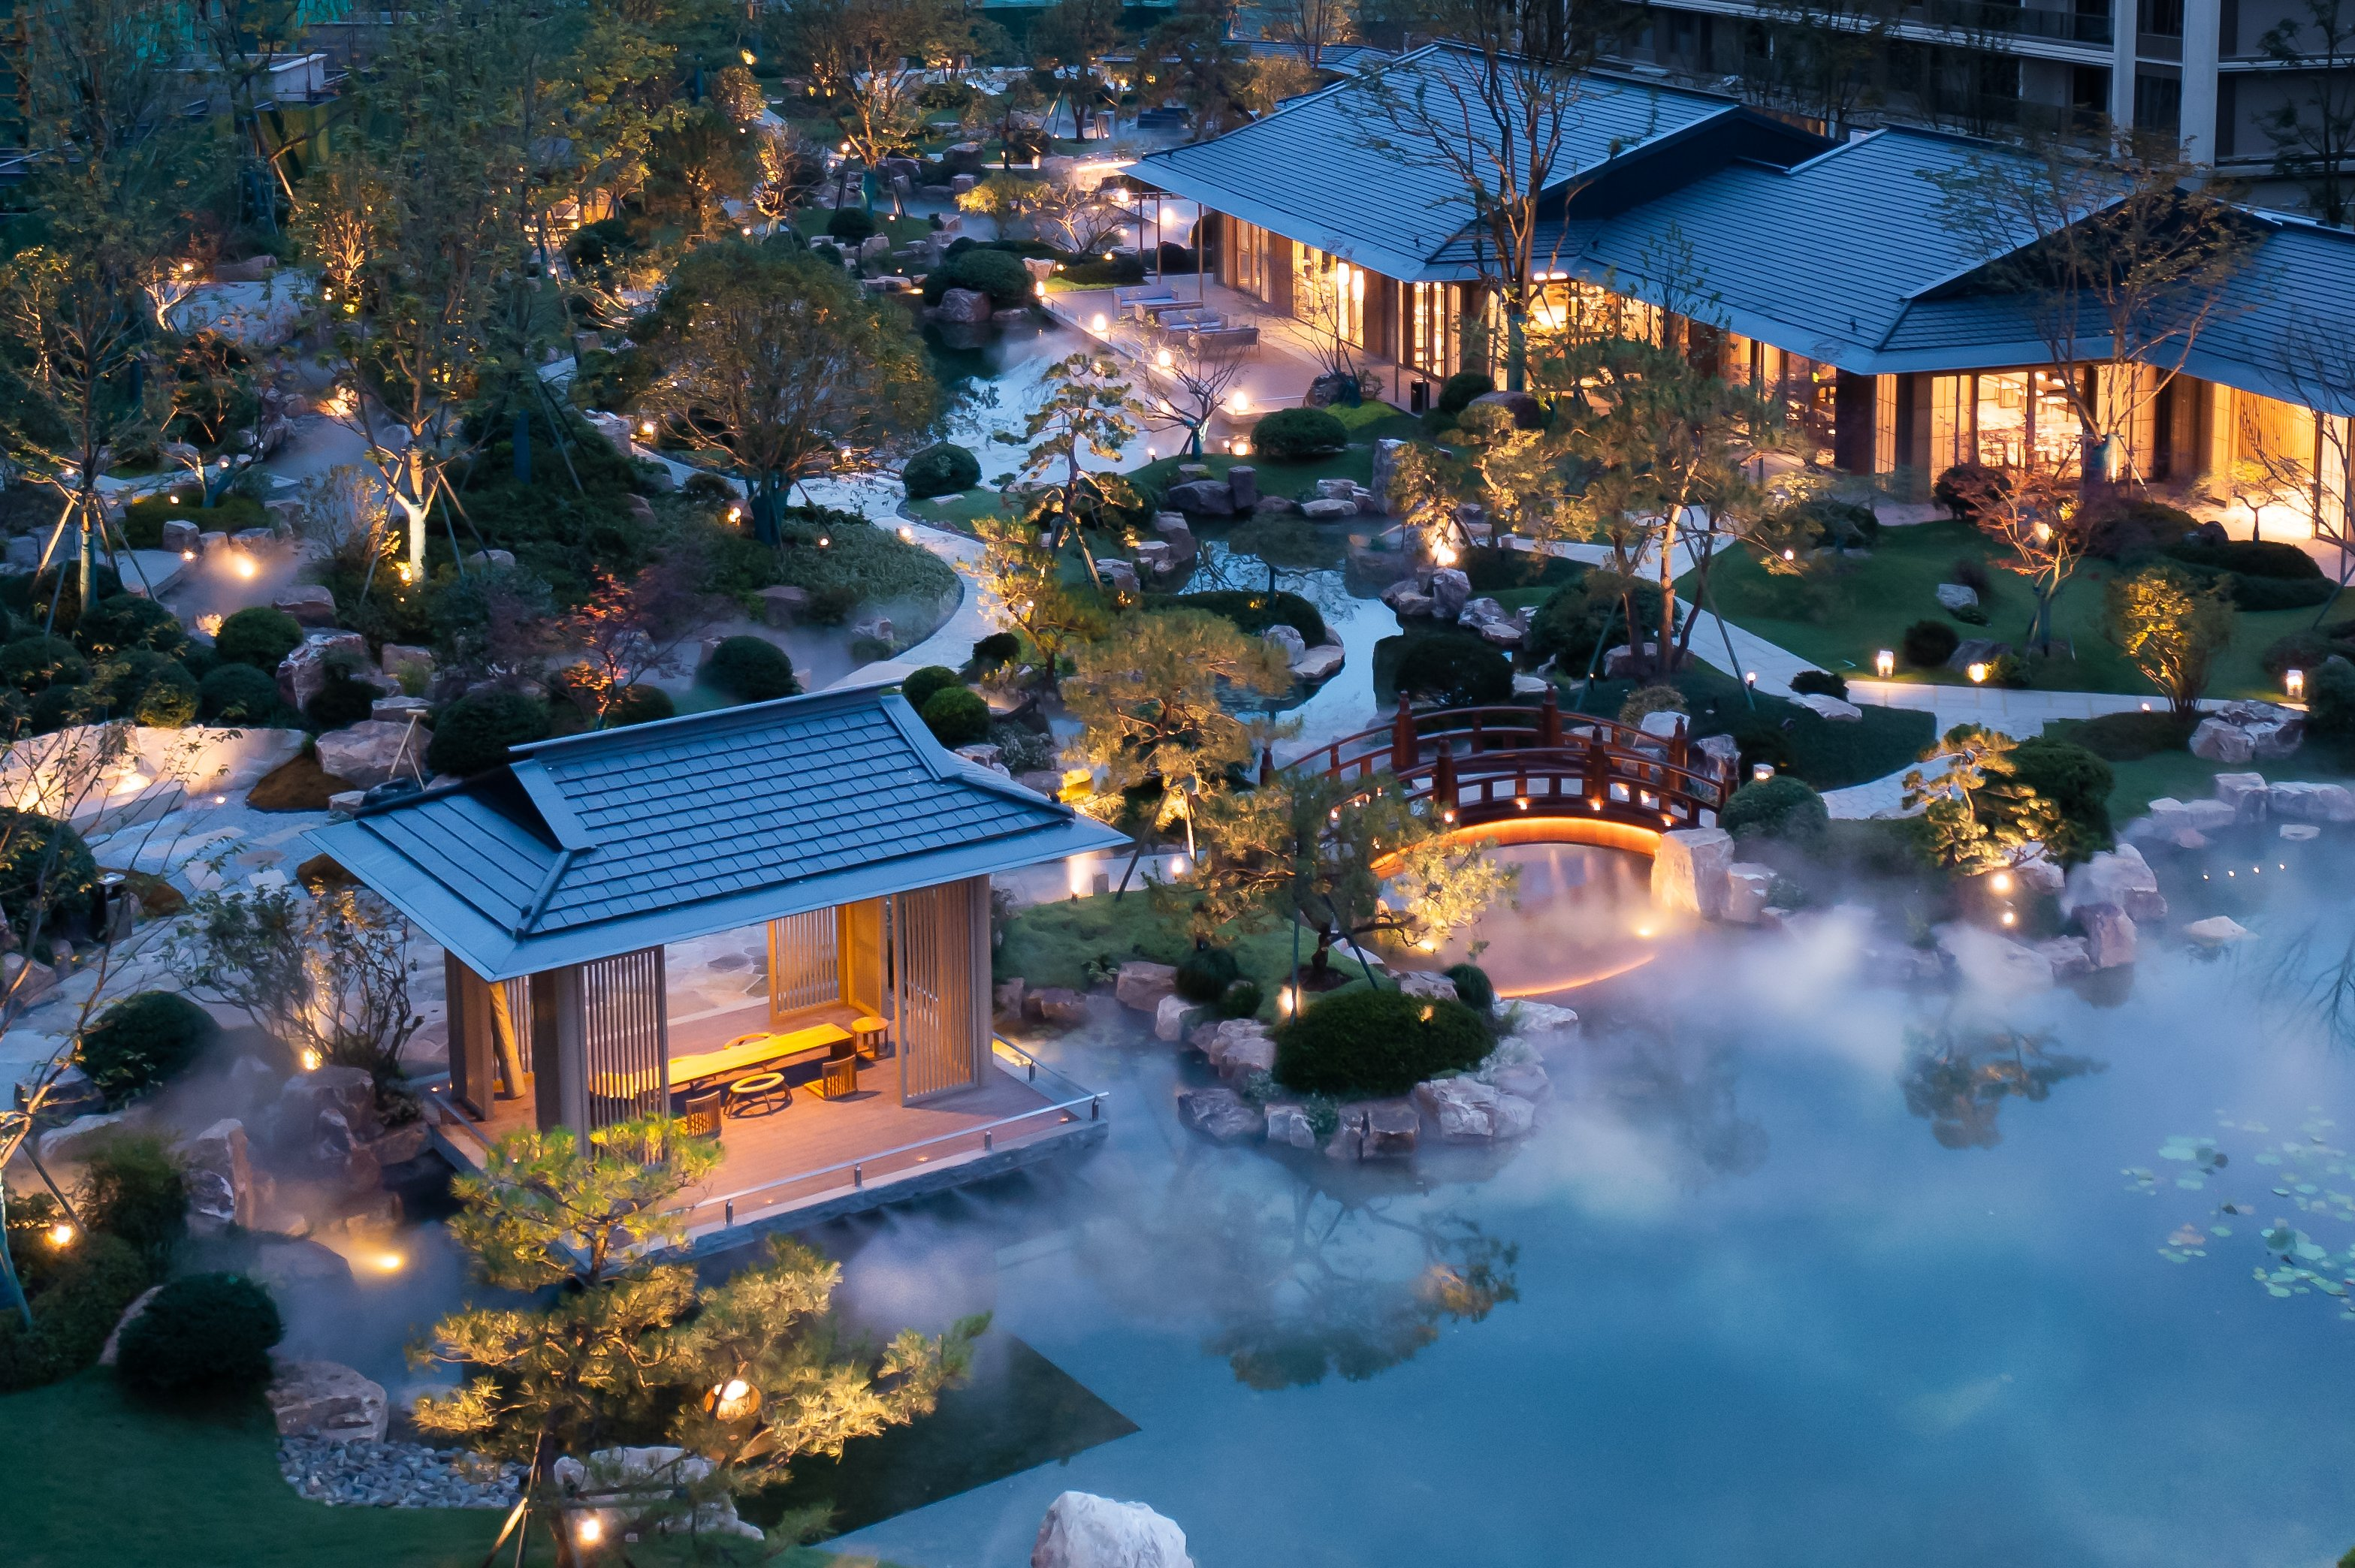 Photo: Wellness Smart Town' in Yixing City